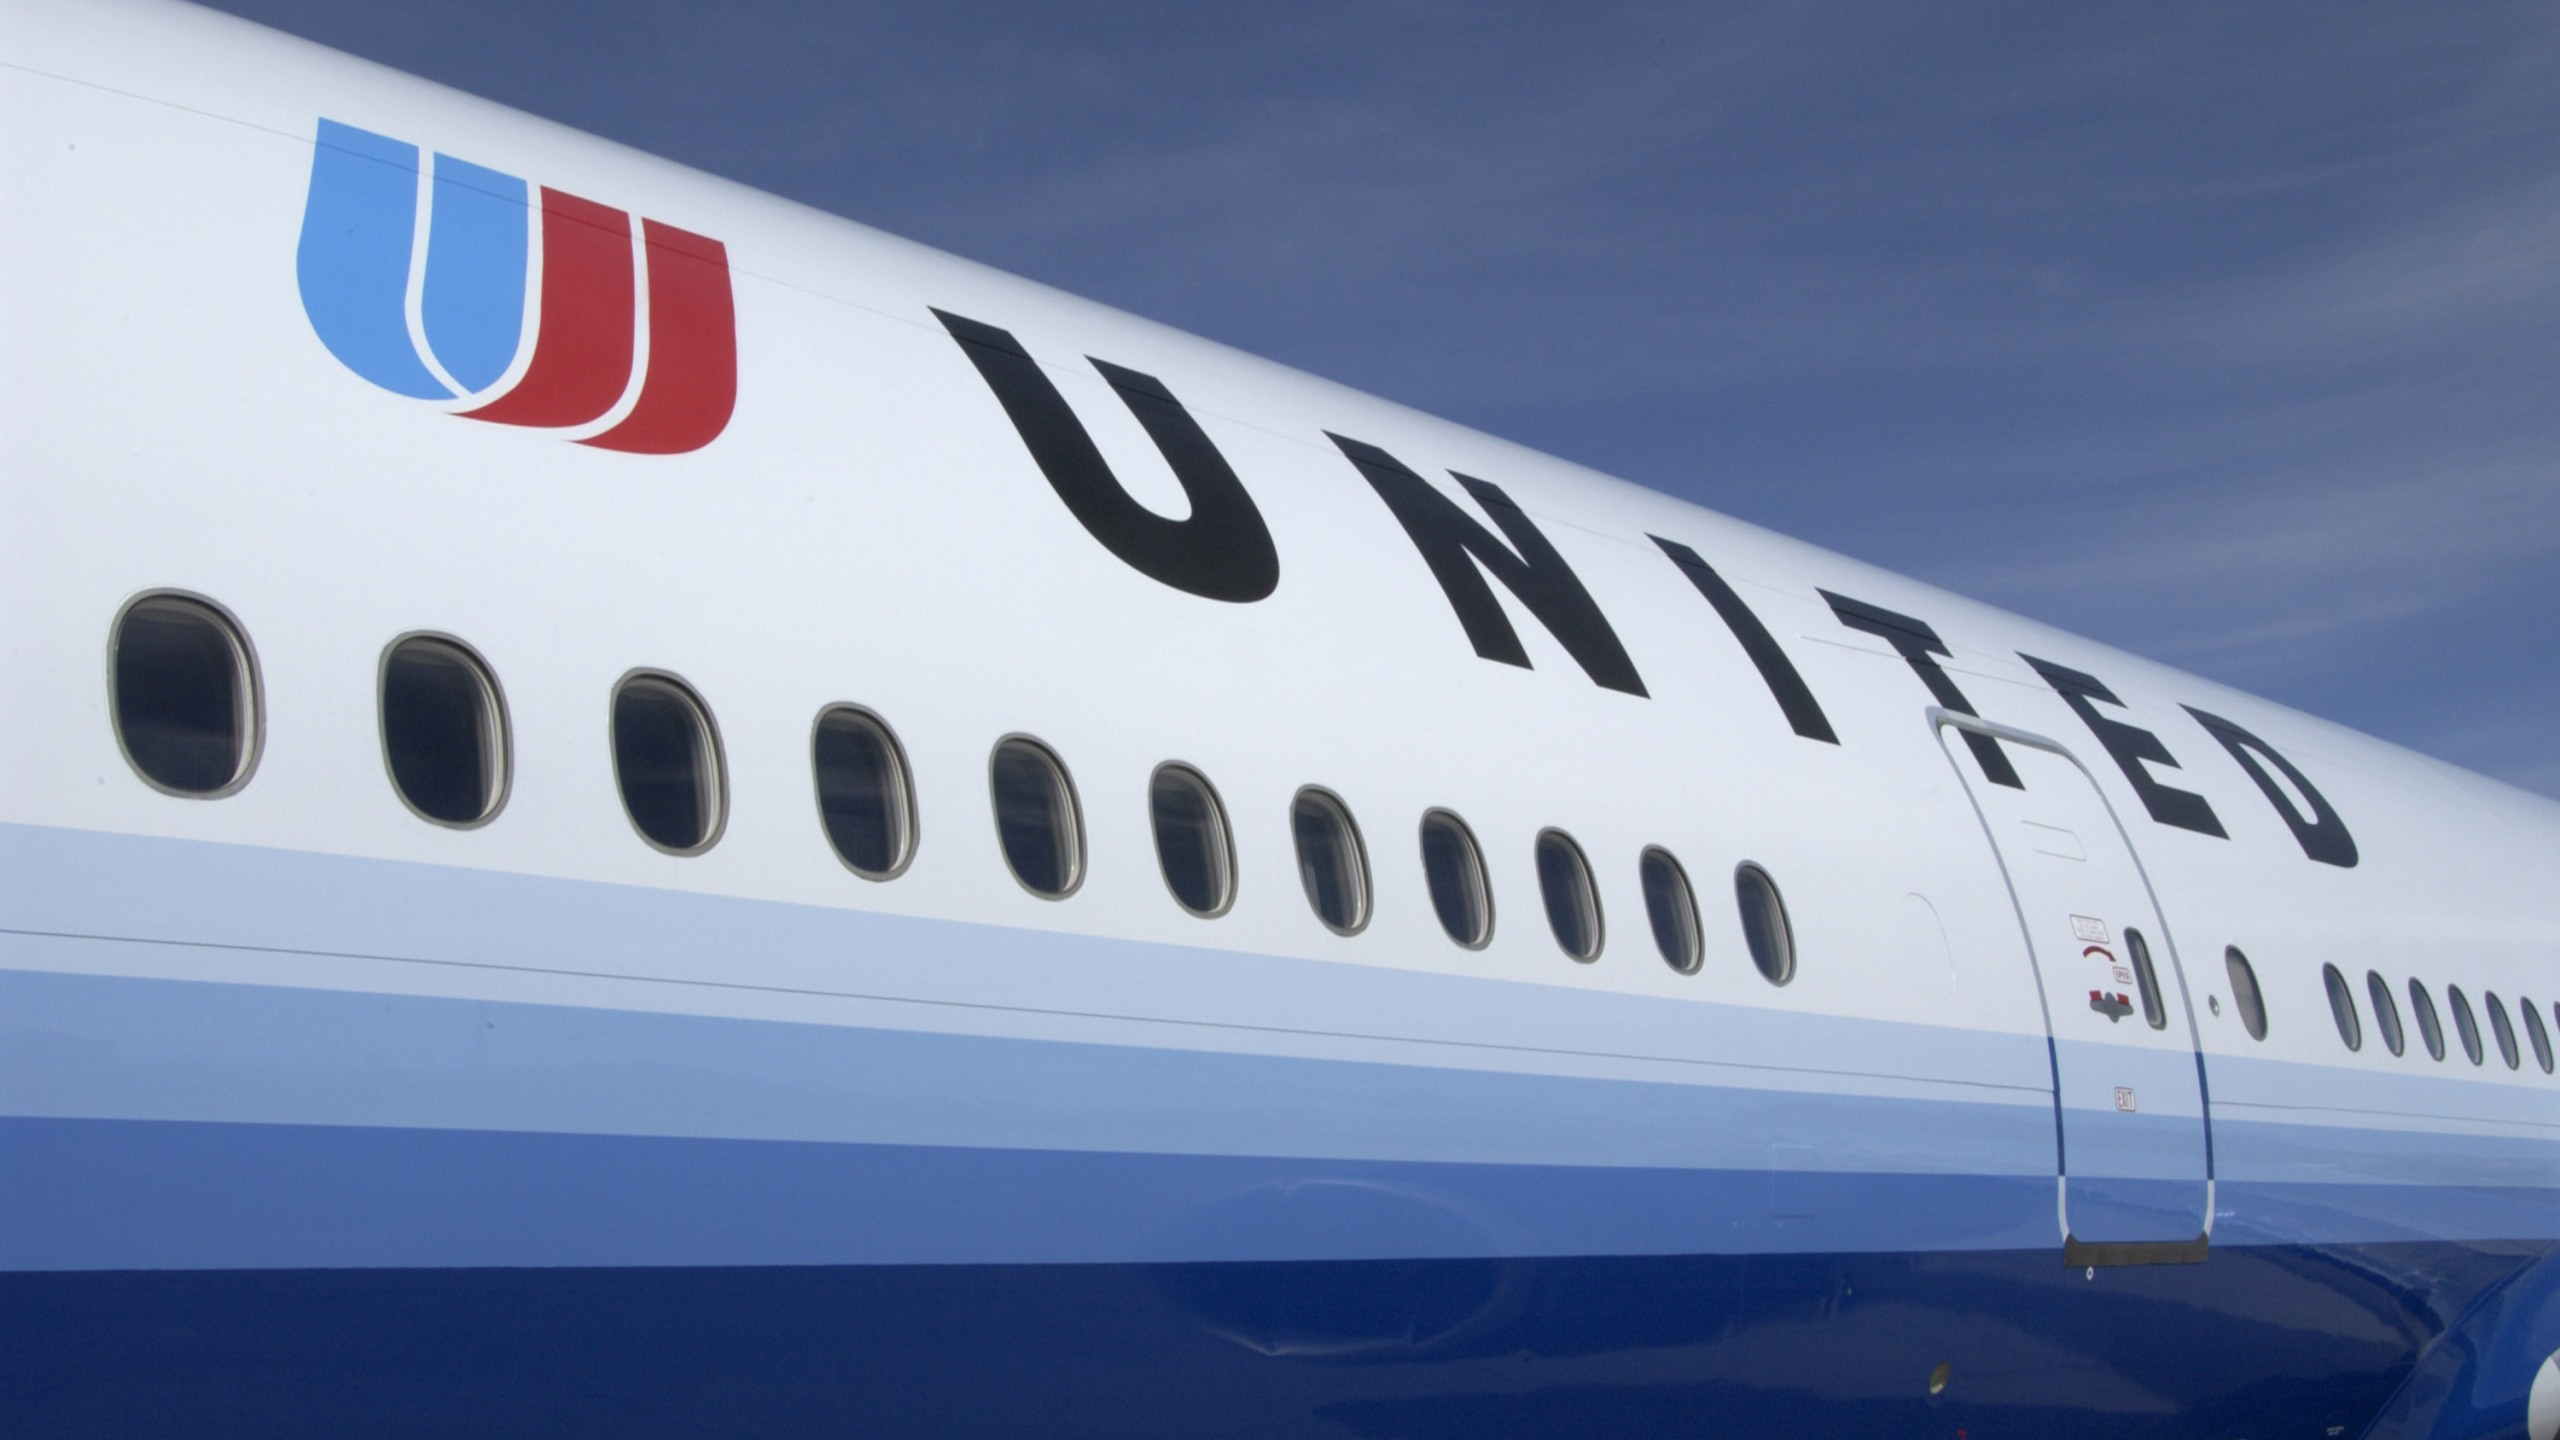 A United Airlines jet appears in a file photo. (Credit: United Airlines via Getty Images)